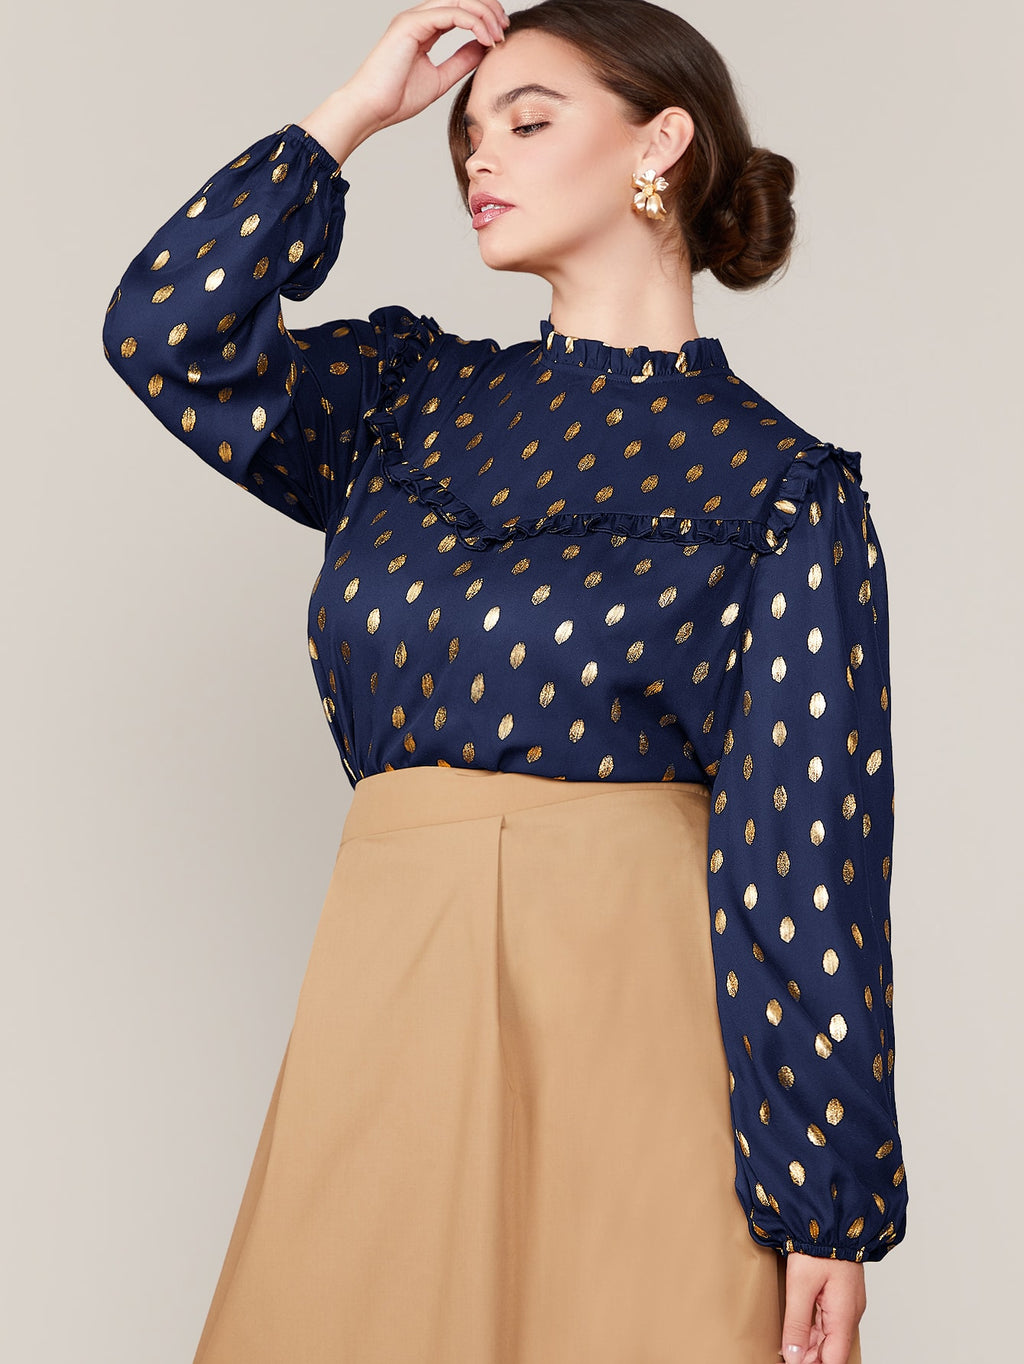 Plus Size Elegant Gold Polka Dot Top